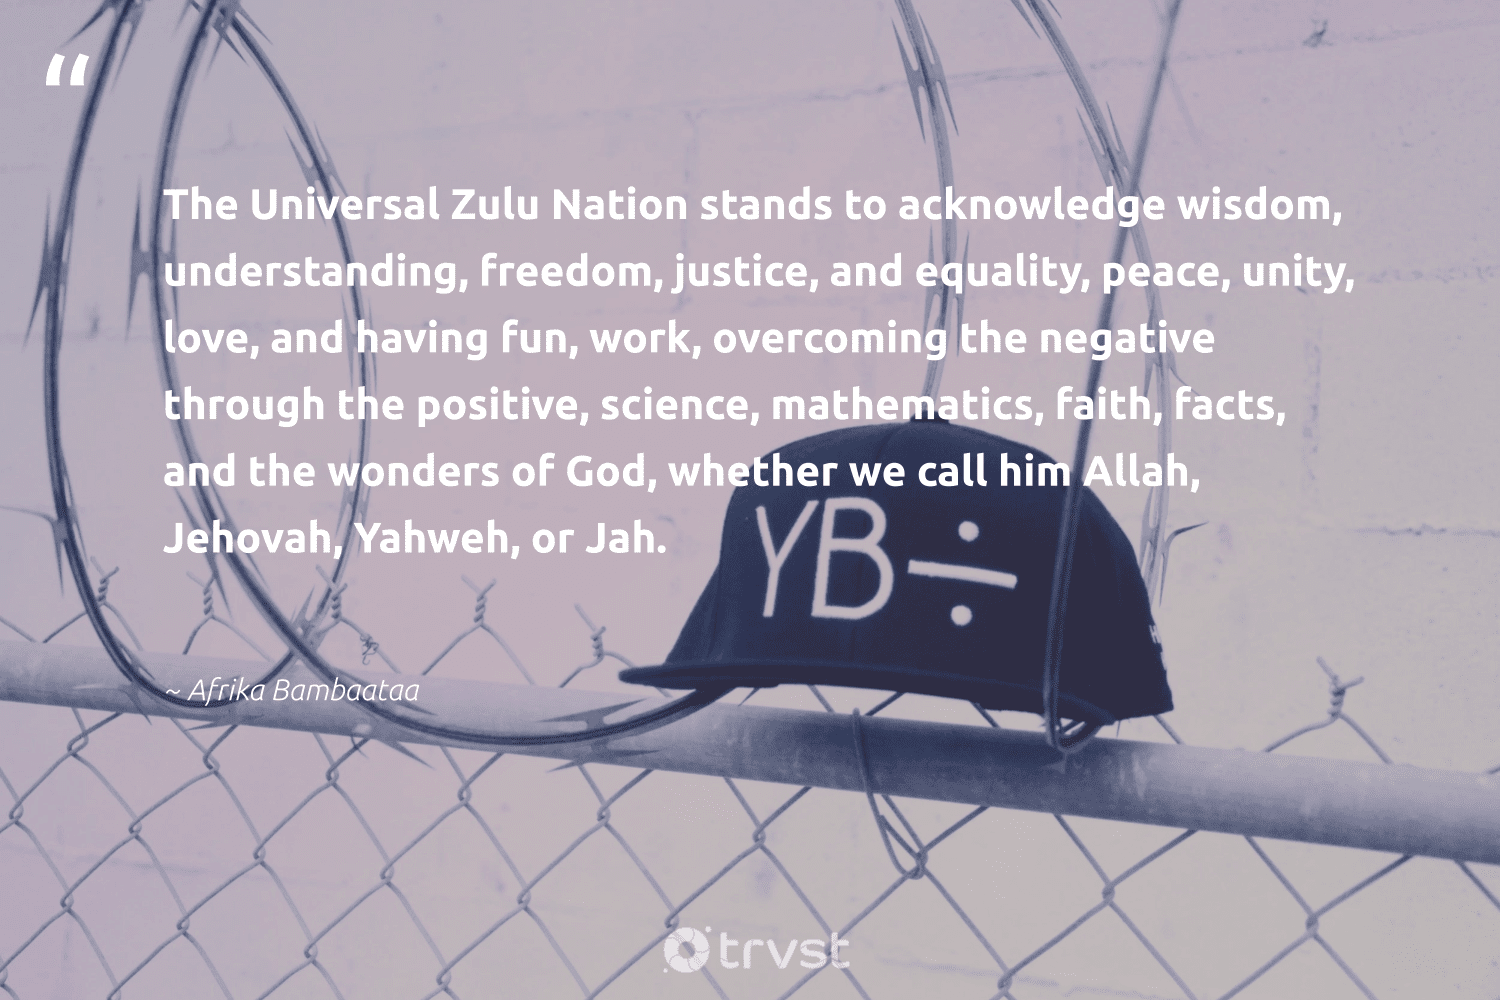 """""""The Universal Zulu Nation stands to acknowledge wisdom, understanding, freedom, justice, and equality, peace, unity, love, and having fun, work, overcoming the negative through the positive, science, mathematics, faith, facts, and the wonders of God, whether we call him Allah, Jehovah, Yahweh, or Jah.""""  - Afrika Bambaataa #trvst #quotes #love #peace #justice #freedom #science #equality #wisdom #biology #socialgood #flowers"""